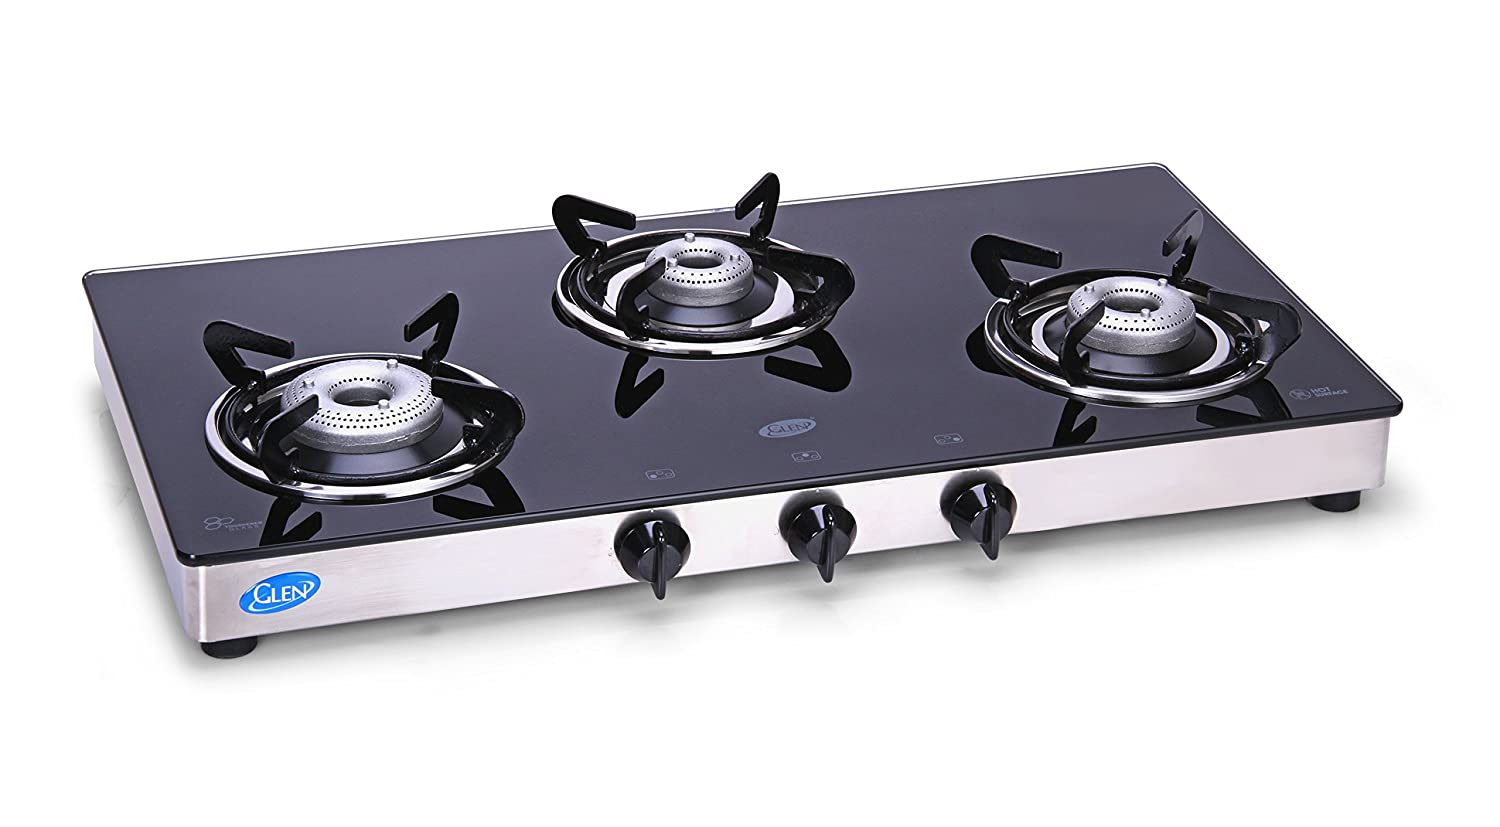 Buy Glen Glass 3 Burner Cooktop, Black/Silver Online At Low Prices In India    Amazon.in